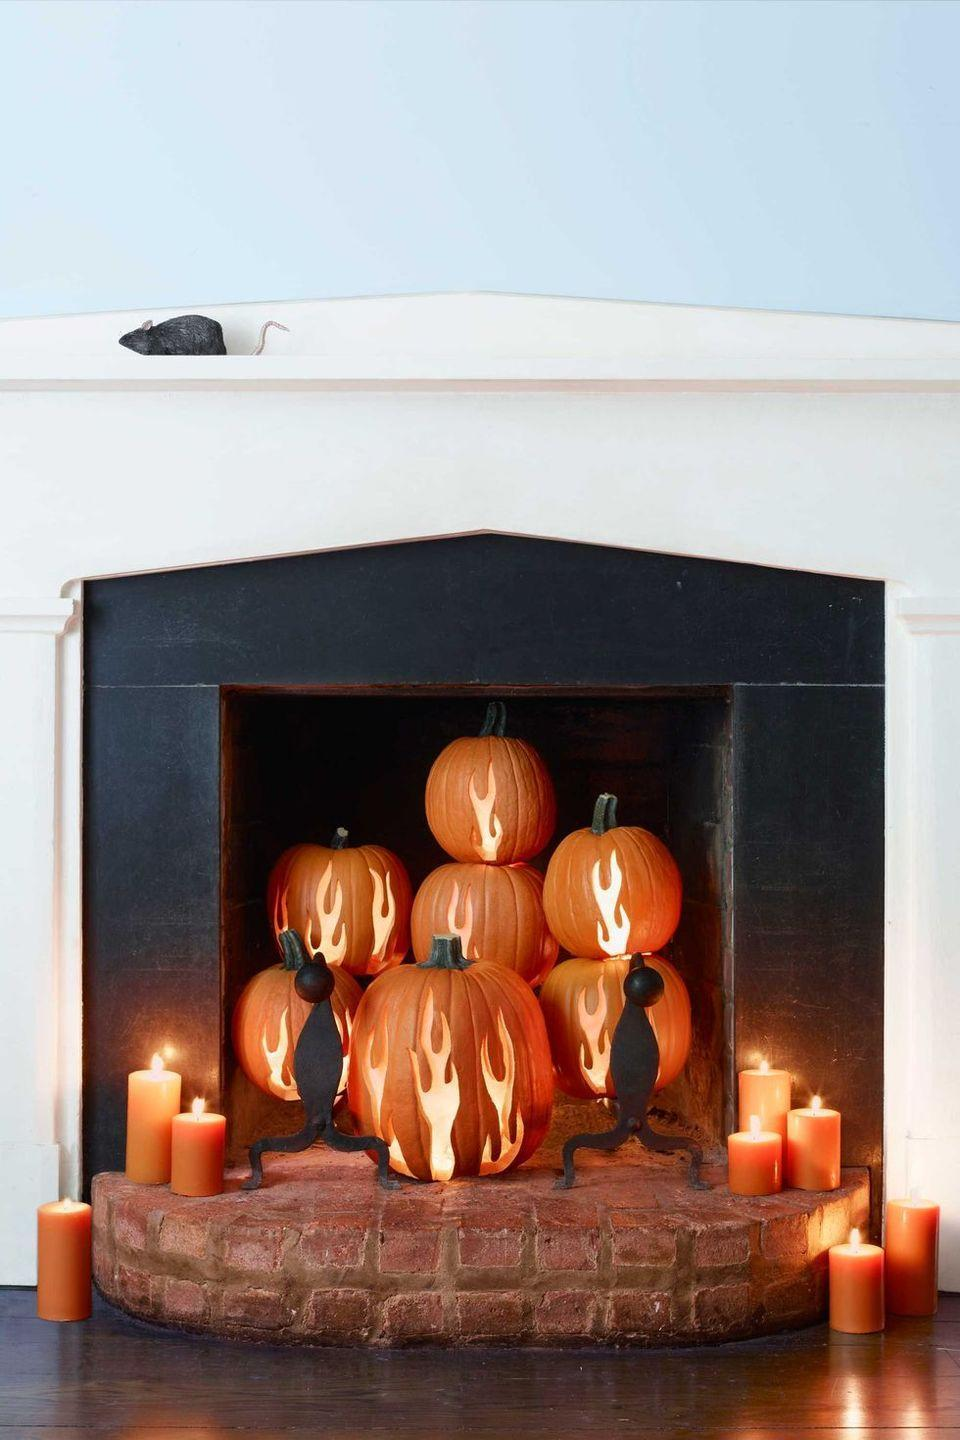 <p>If you have a non-working fireplace, create the aura of a fire with these flame cutouts in your pumpkins. But consider lighting with electric candles instead so there's no reason to worry about a fire hazard inside your house. </p>